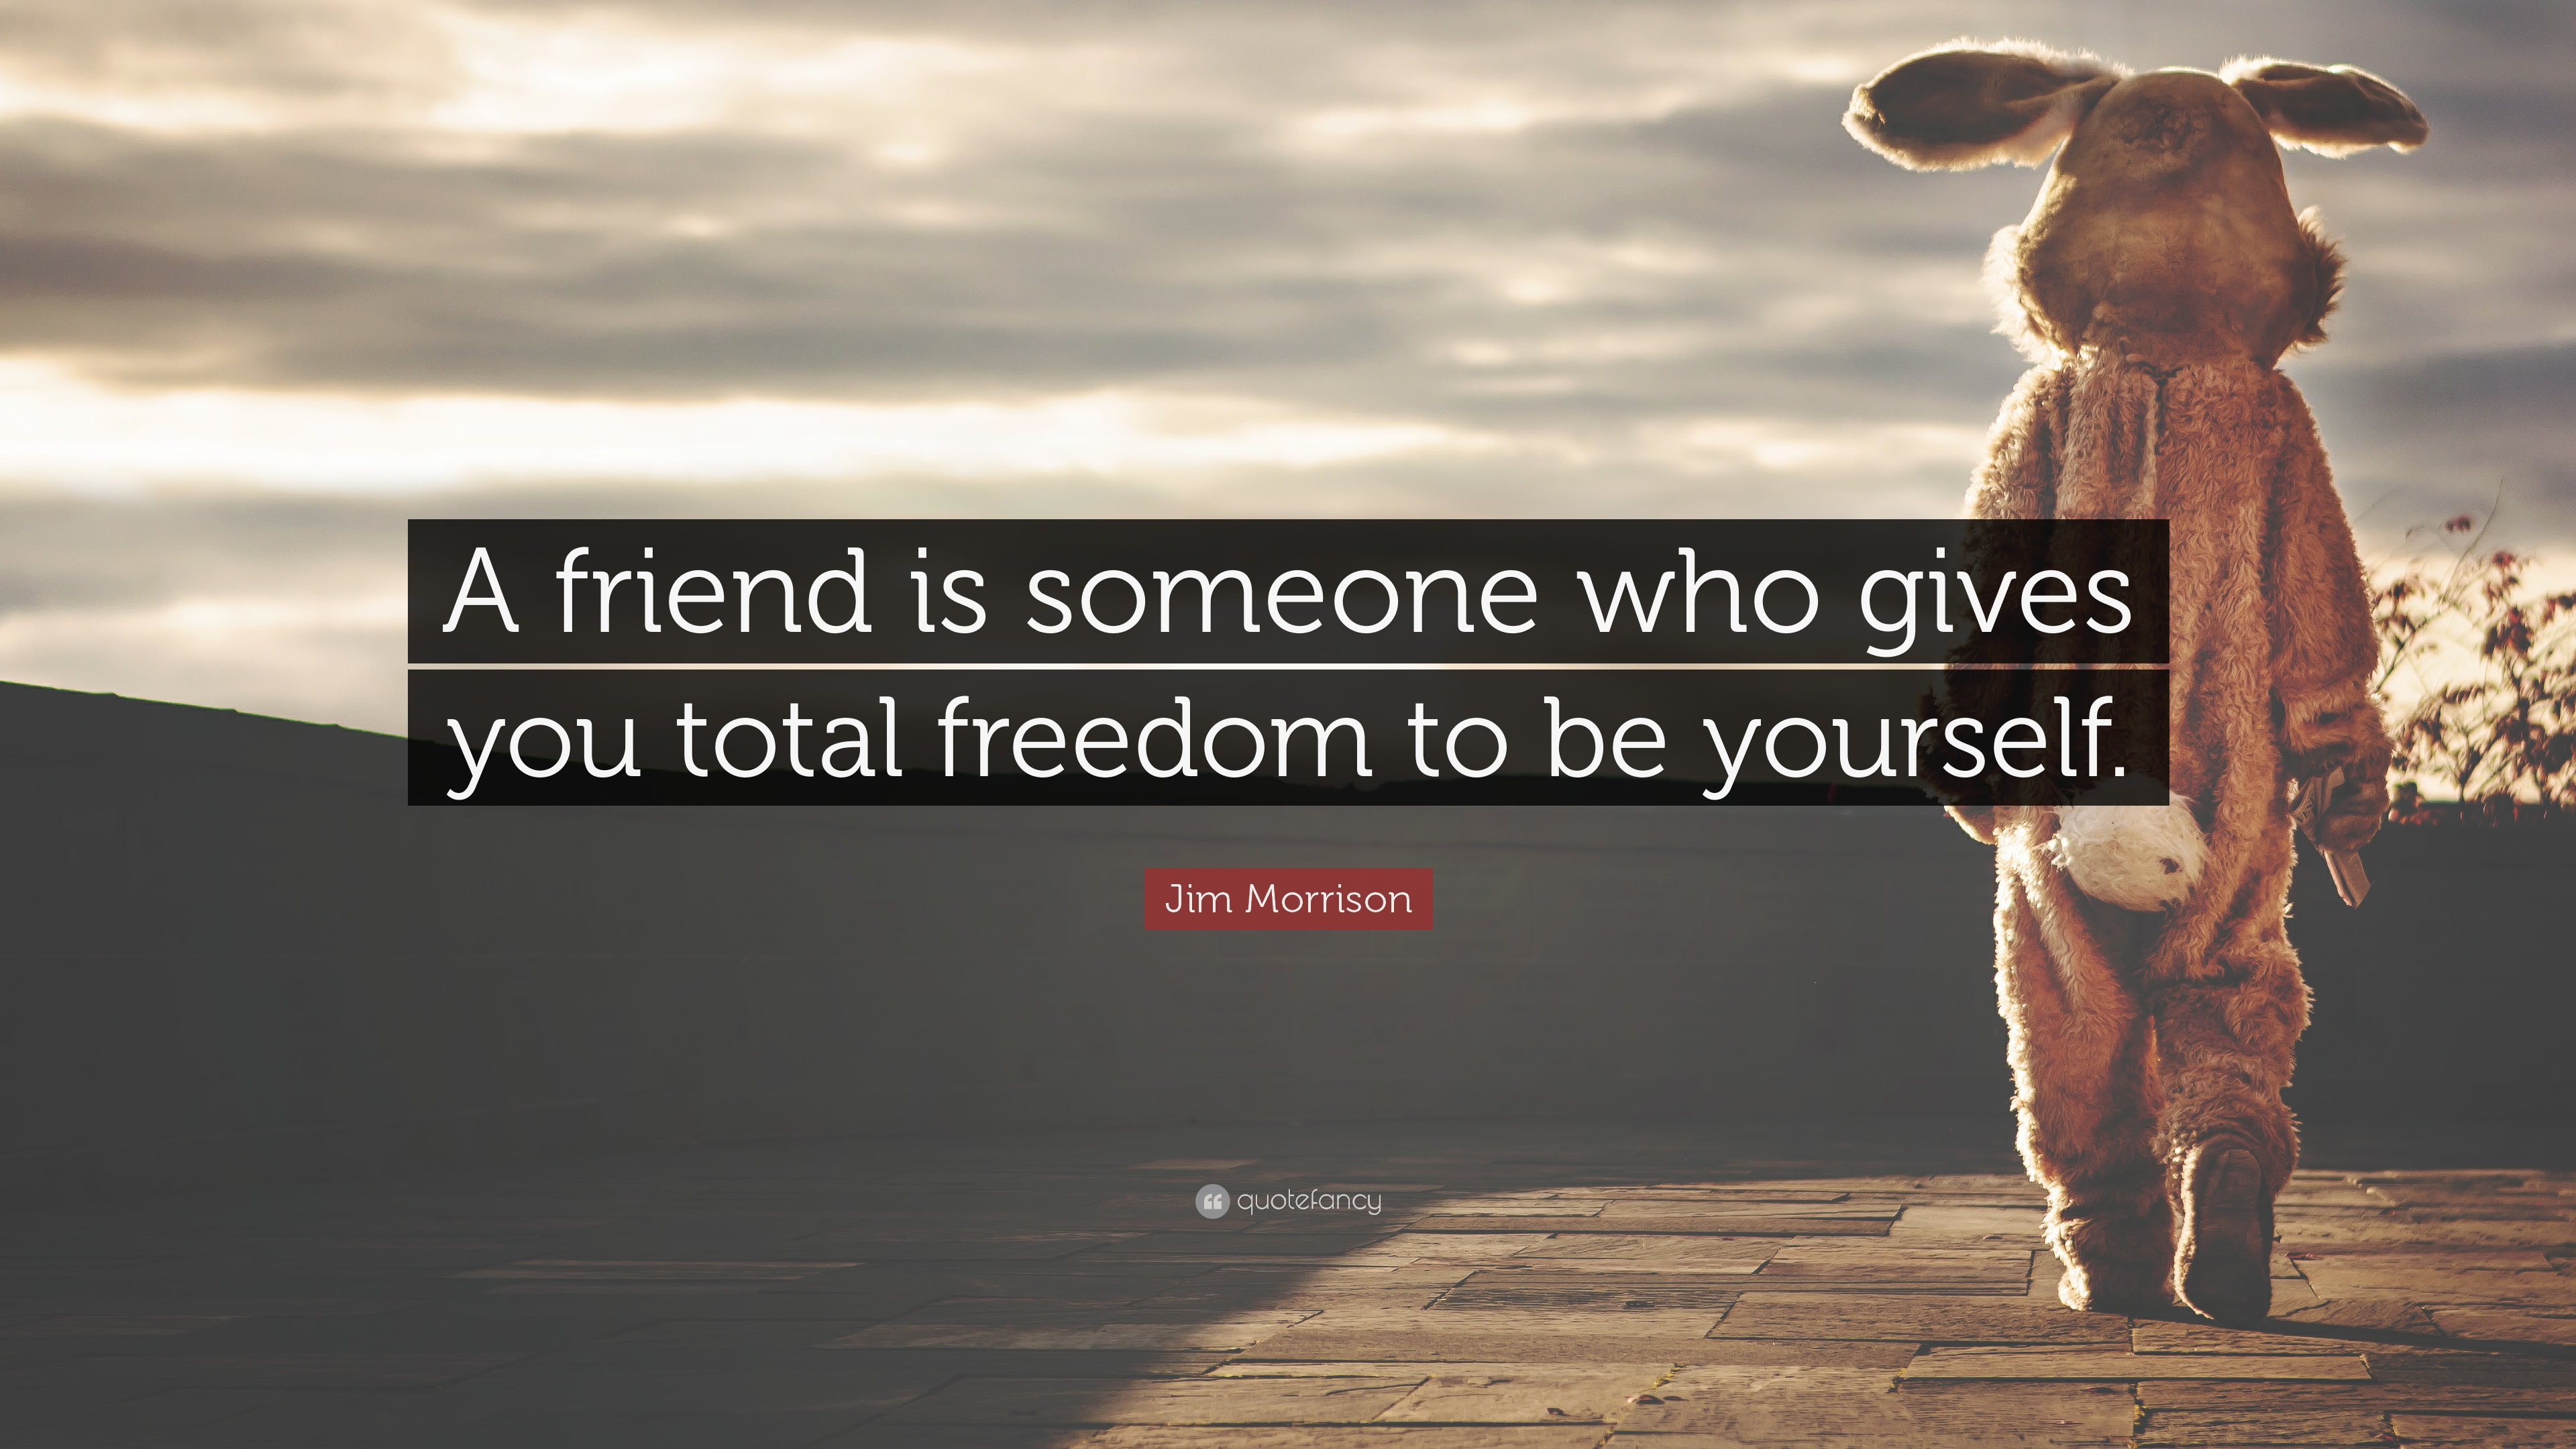 Image of: Life Quotes Friendship Quotes Goodreads Friendship Quotes 21 Wallpapers Quotefancy